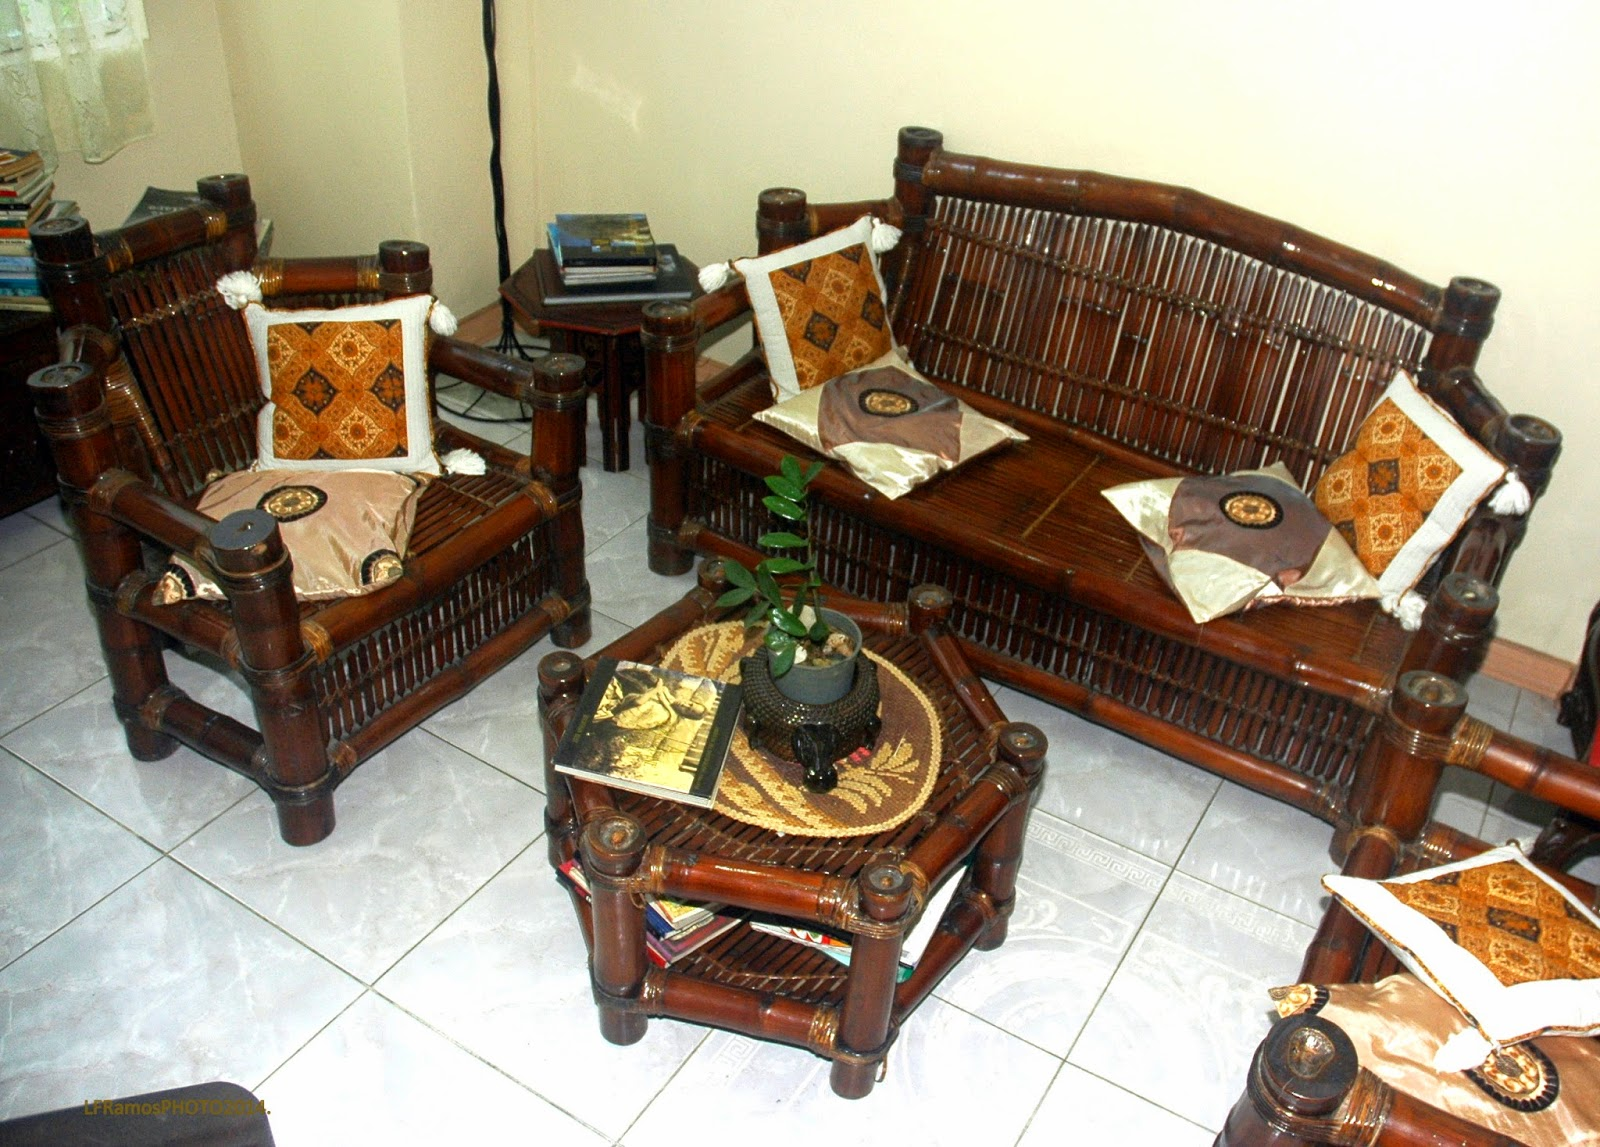 Sala Set For Sale In Iloilo City Hd Wallpapers Dining Set For Sale Iloilo City 2love5android Cf